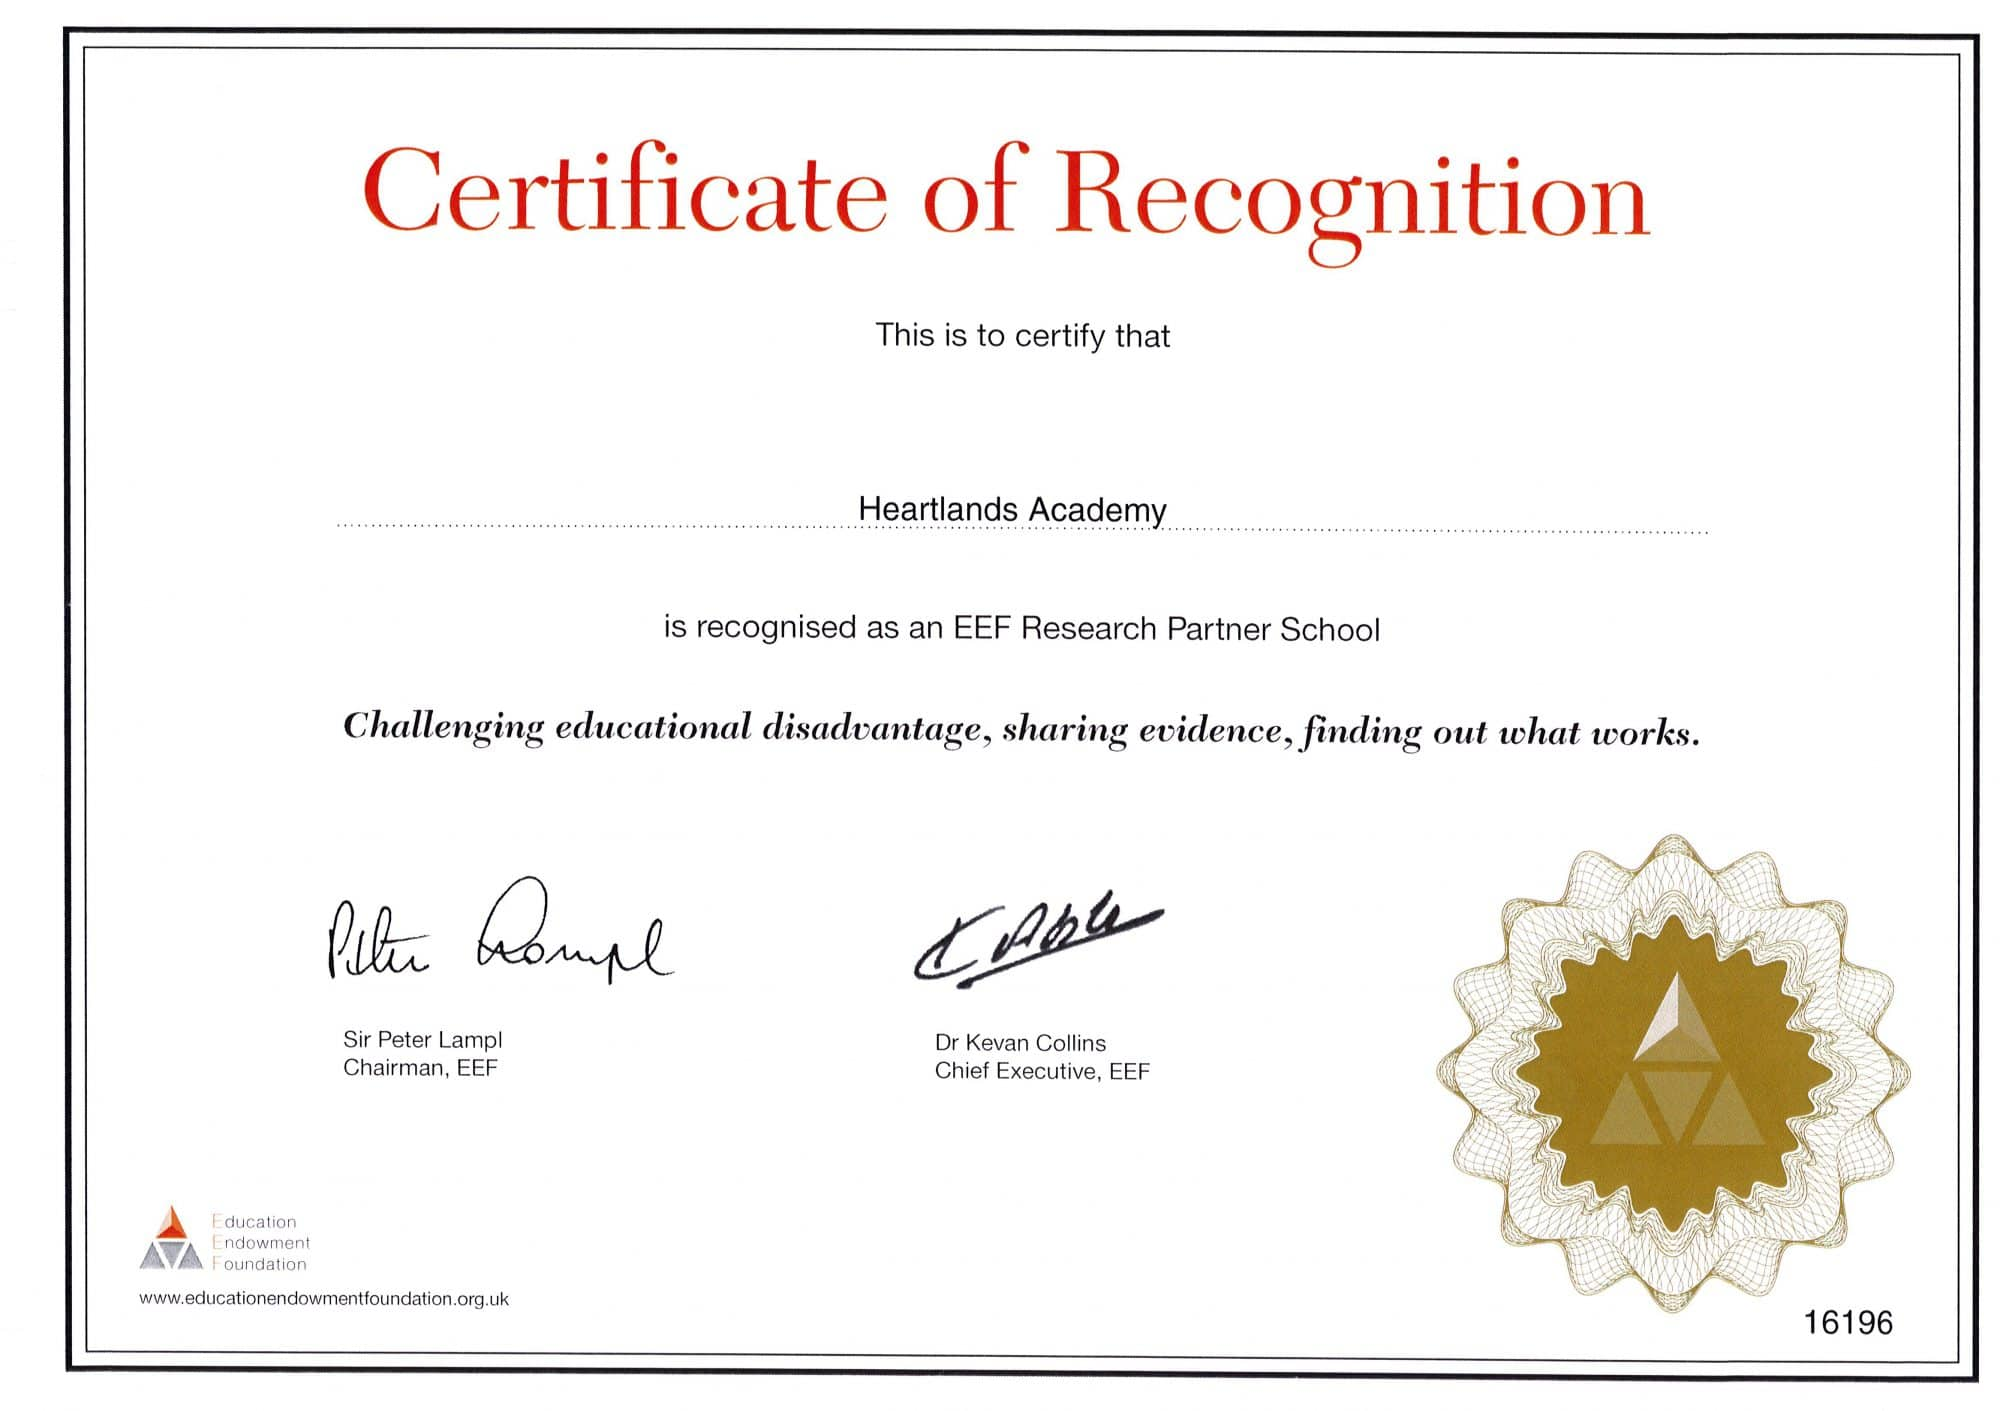 EEF Research Partner School certificate